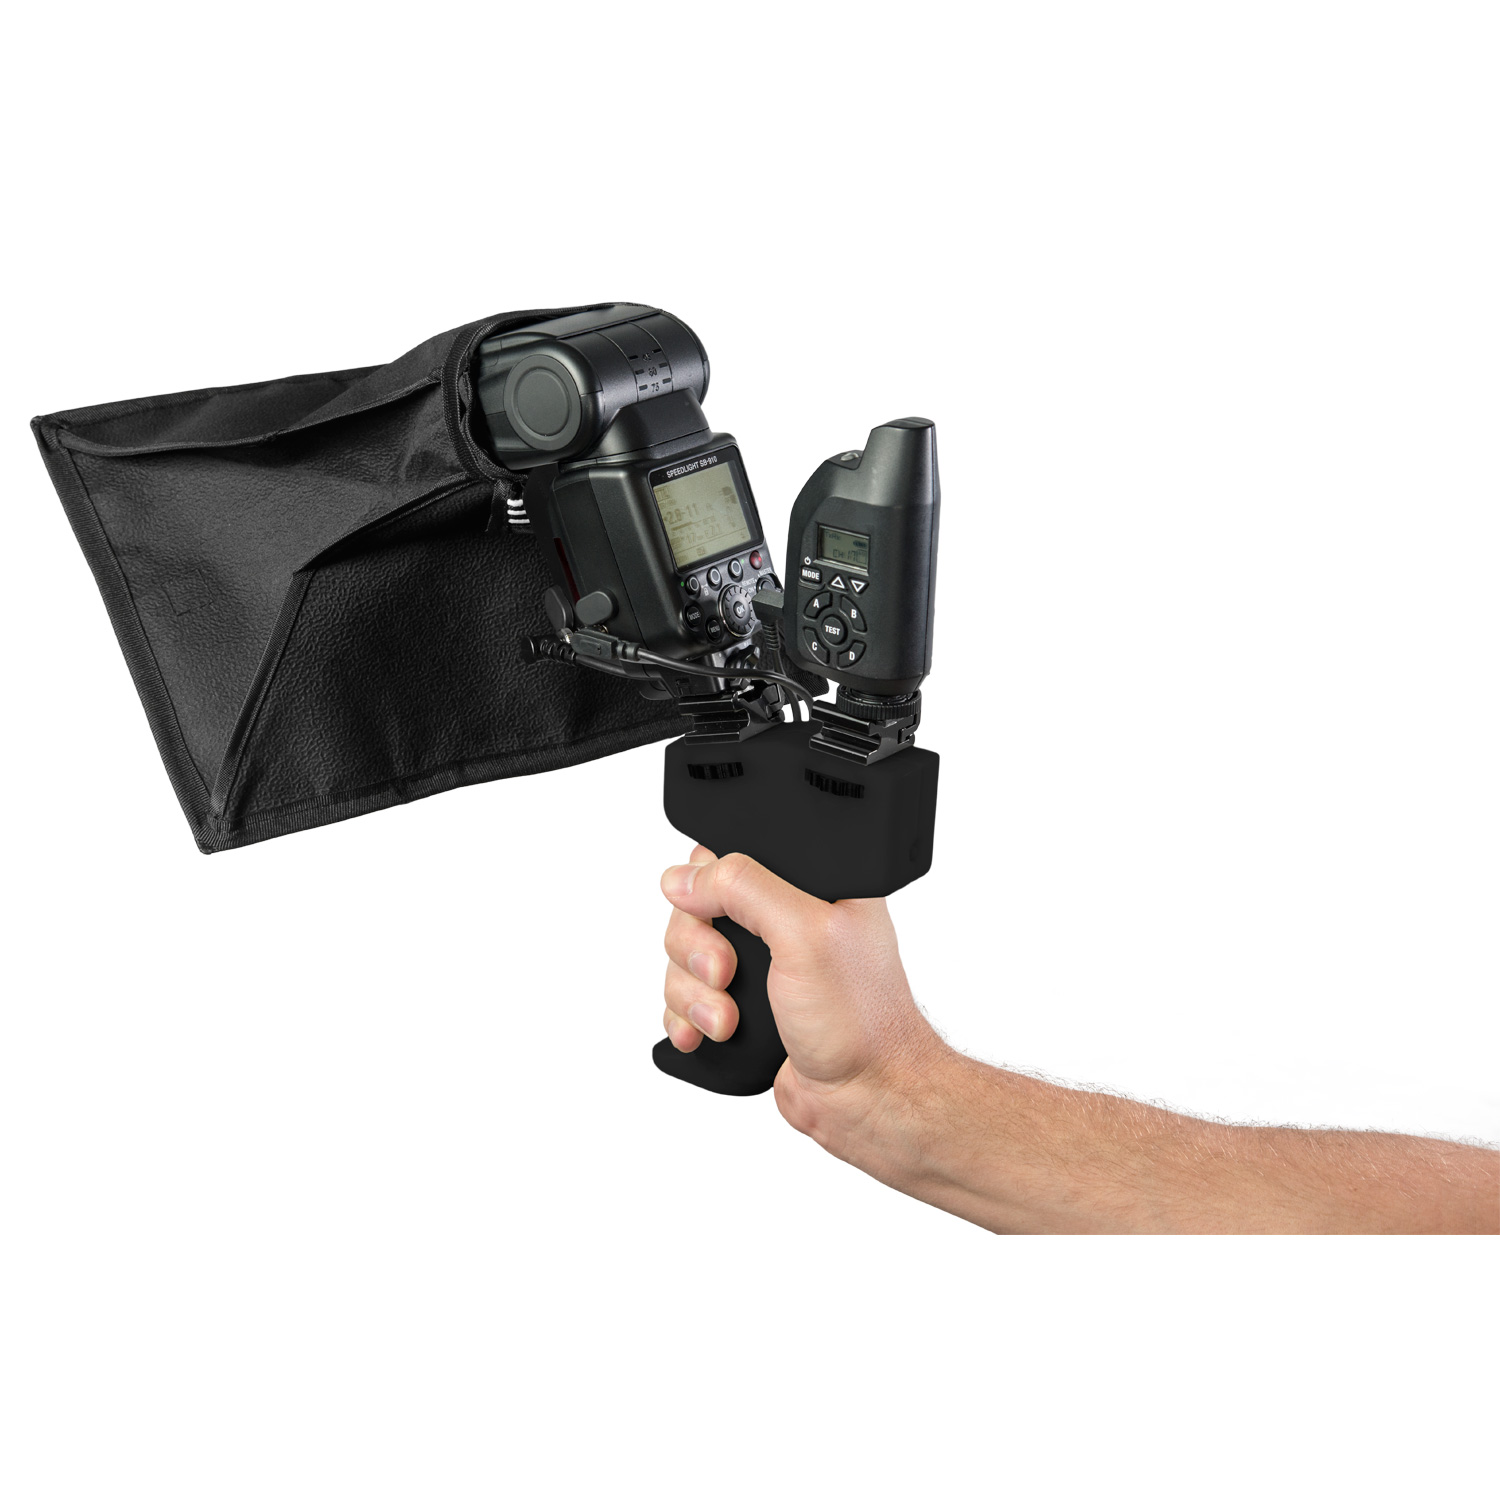 ProGrip Pocket Box Speedlite Modifier Kit